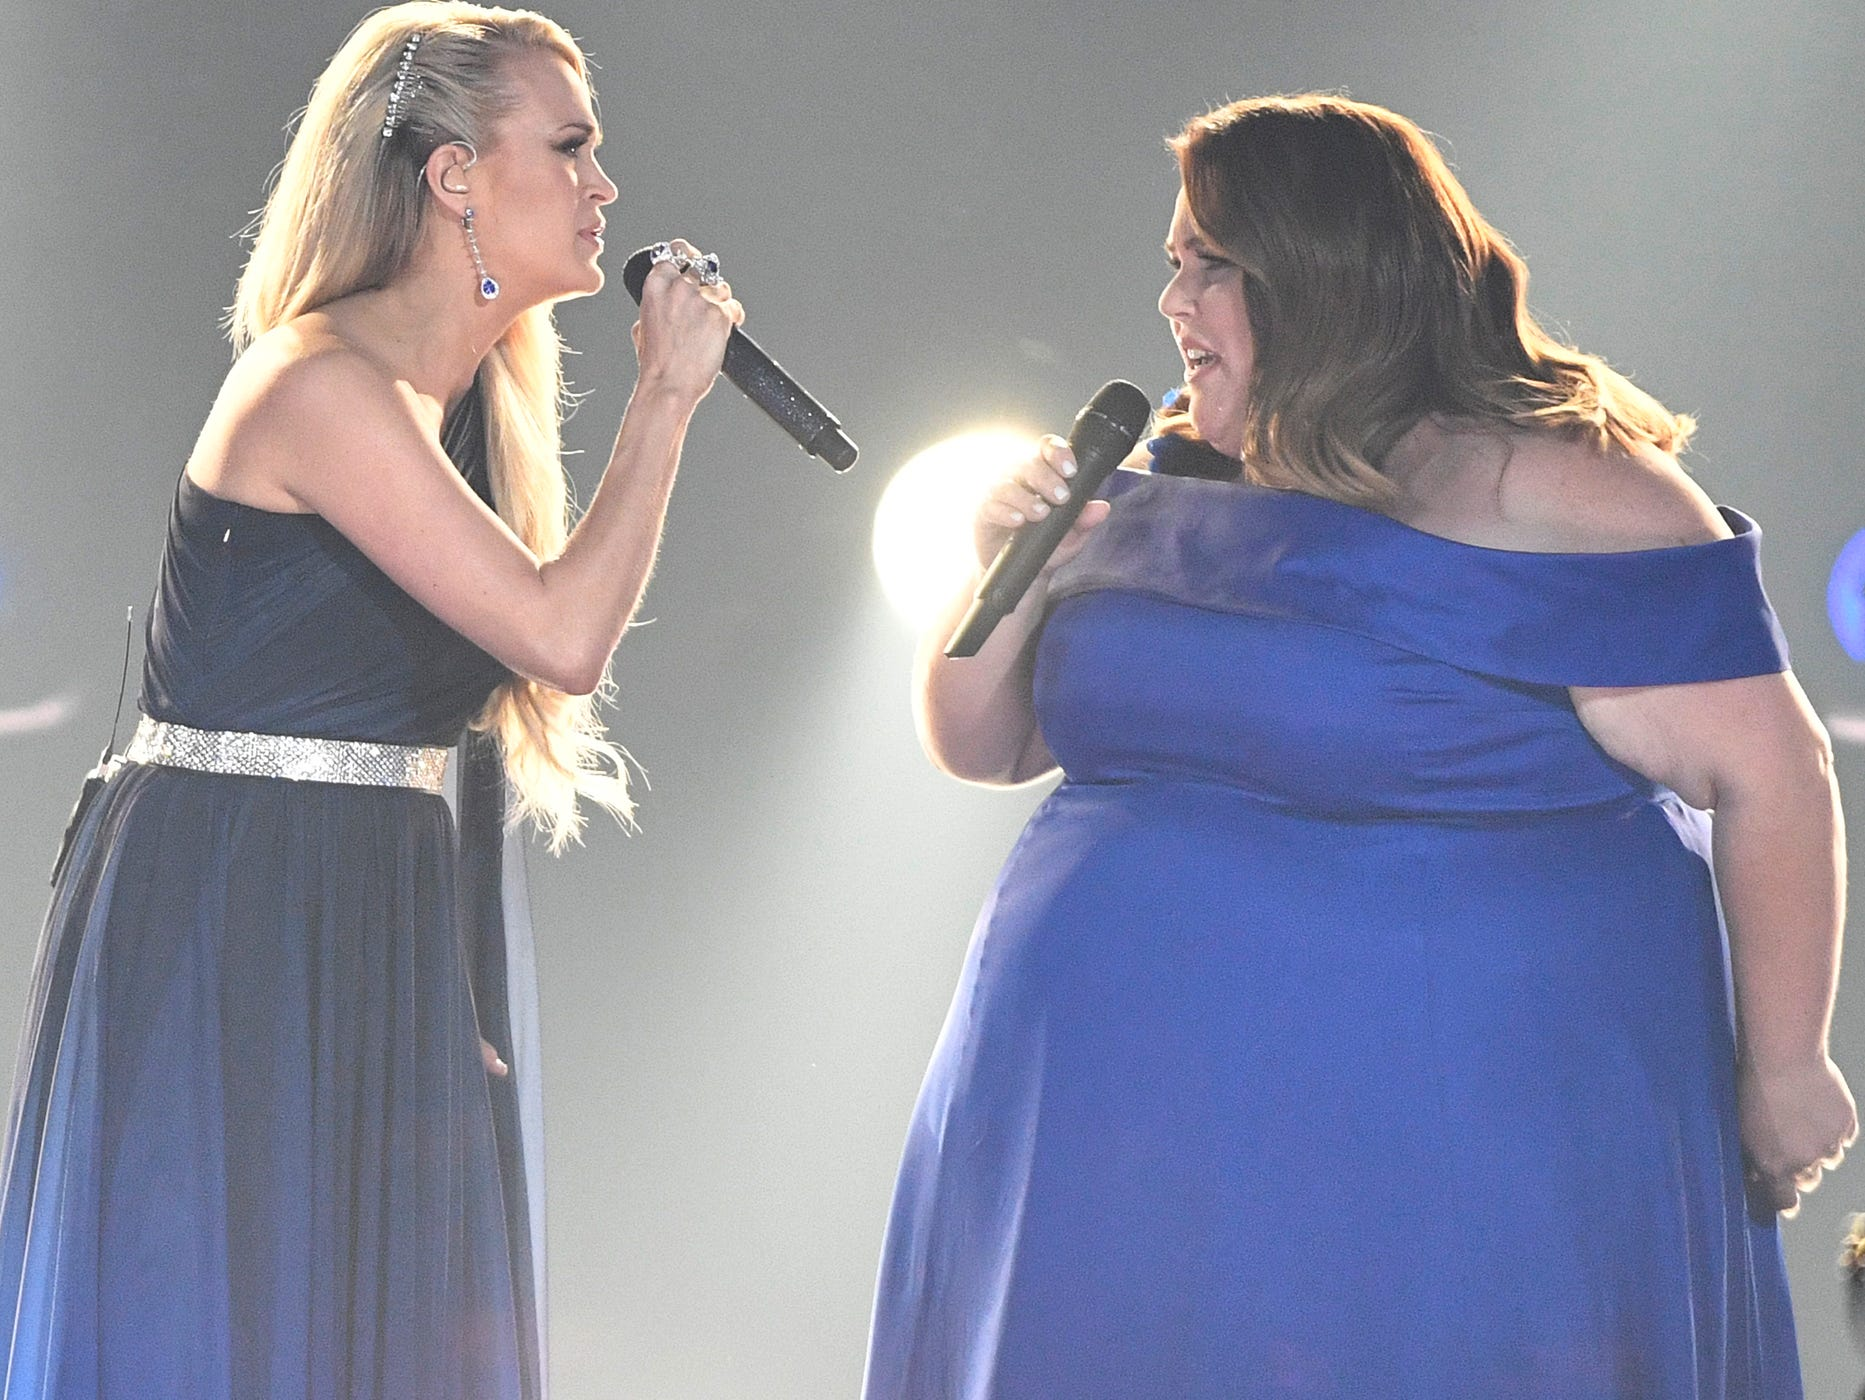 Carrie Underwood, left, and Chrissy Metz, perform during the 54TH Academy of Country Music Awards Sunday, April 7, 2019, in Las Vegas, Nev.